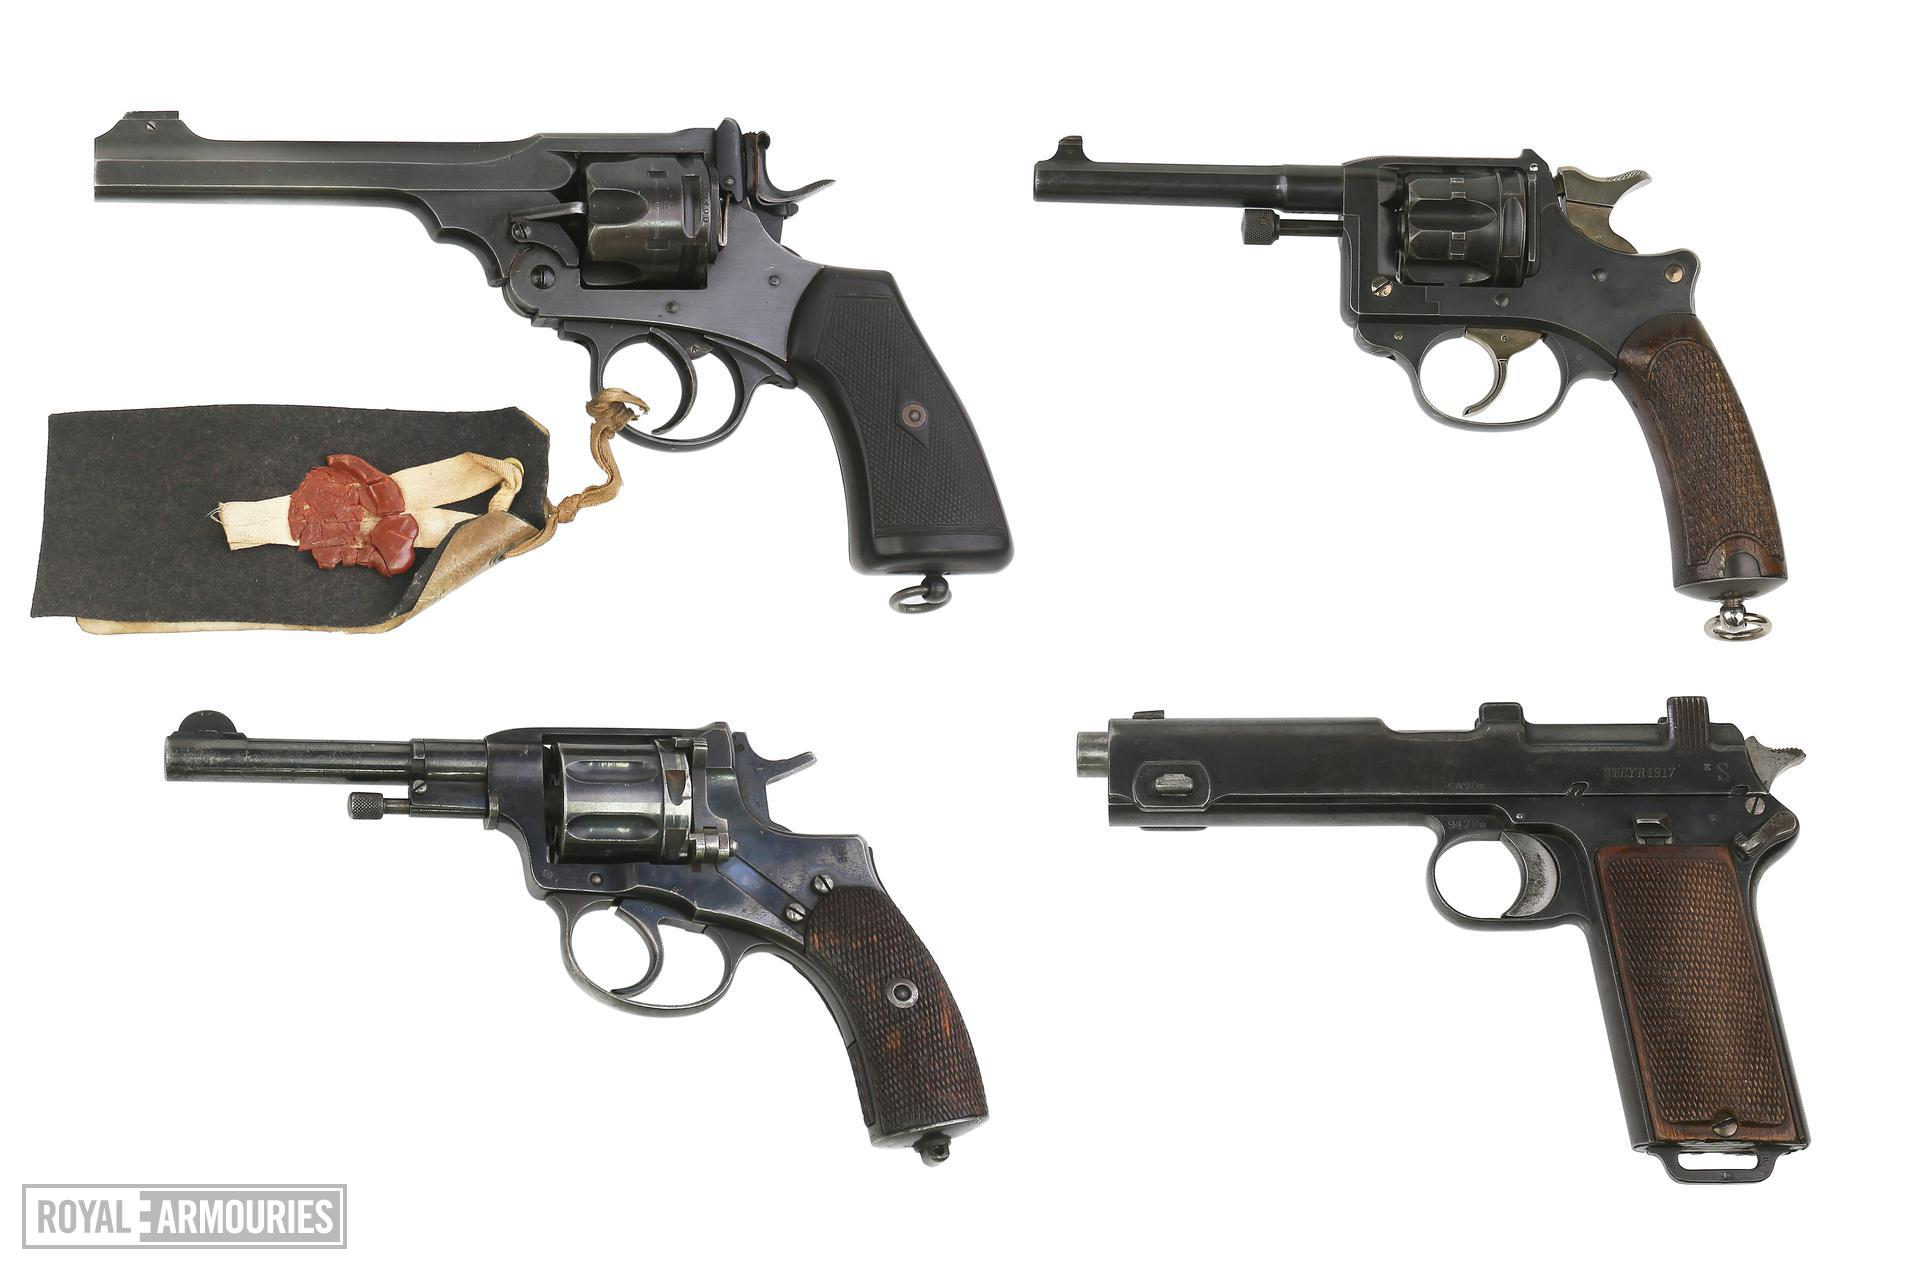 Collection of Centrefire revolvers & pistols. XII.4122, XII.10717, PR.4721 & PR.3276.